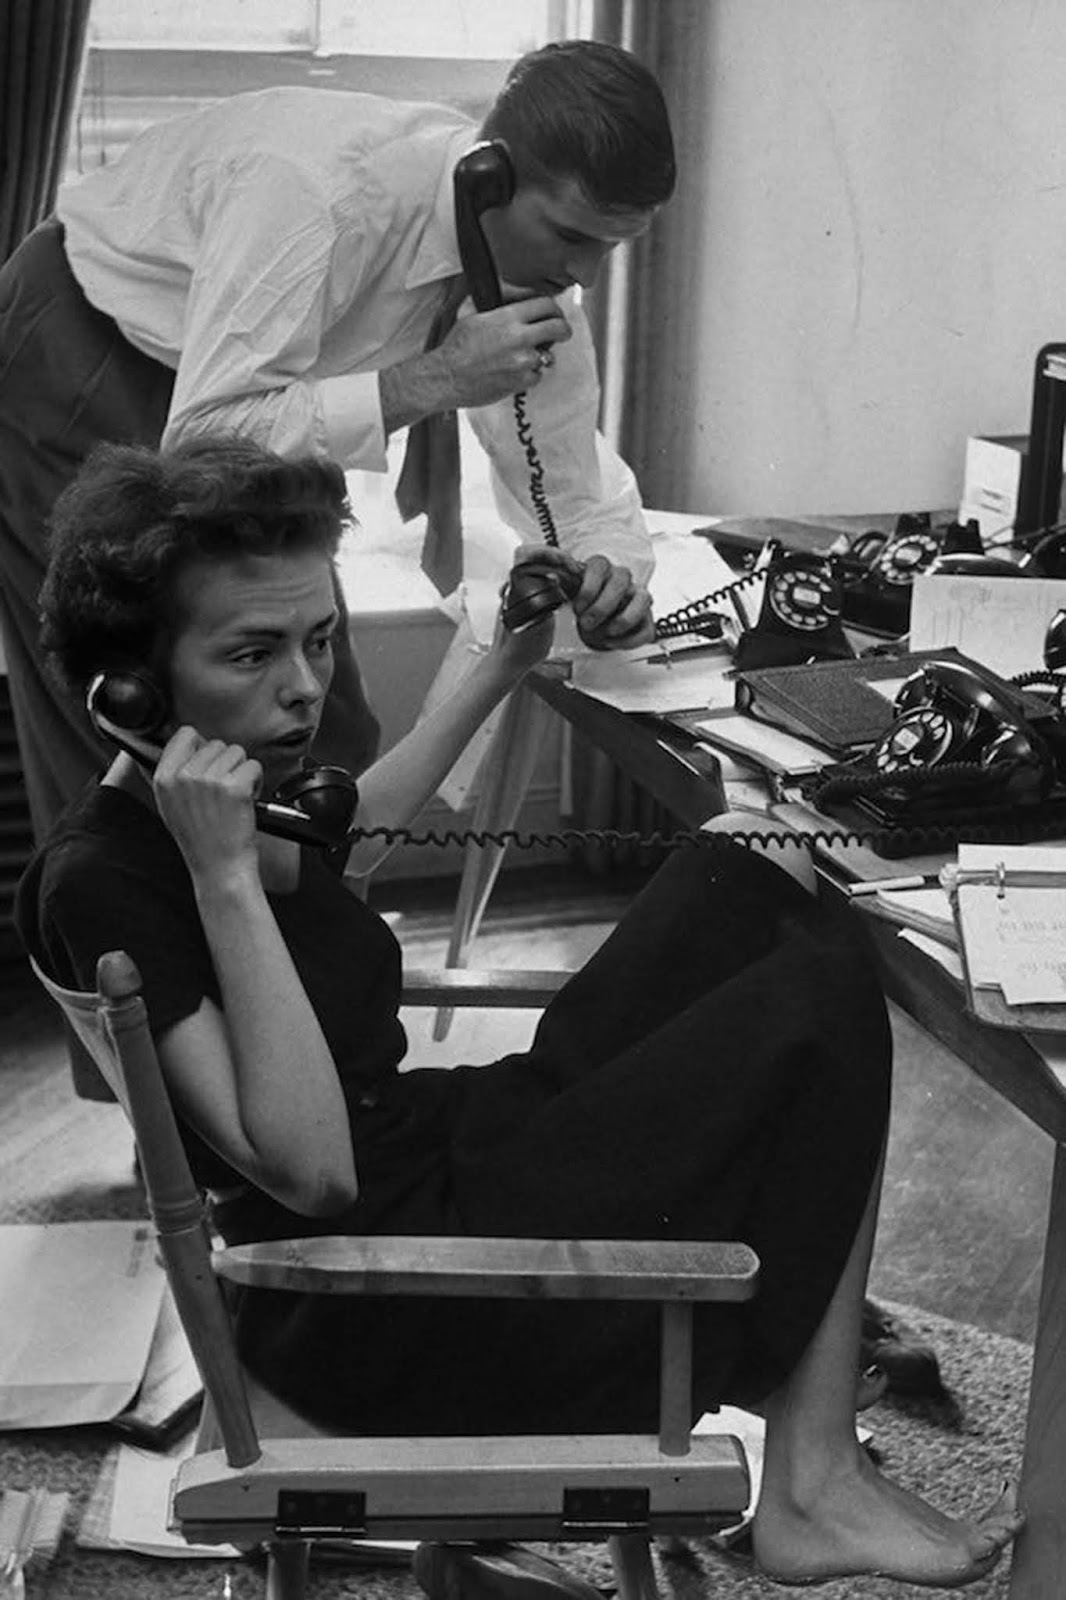 Ford Modeling Agency co-owner Eileen Ford and her husband answering calls requesting one of their 34 high fashion models. They're in her third floor office in New York. She is dressed in black, barefoot and has her hair cut short. 1948.